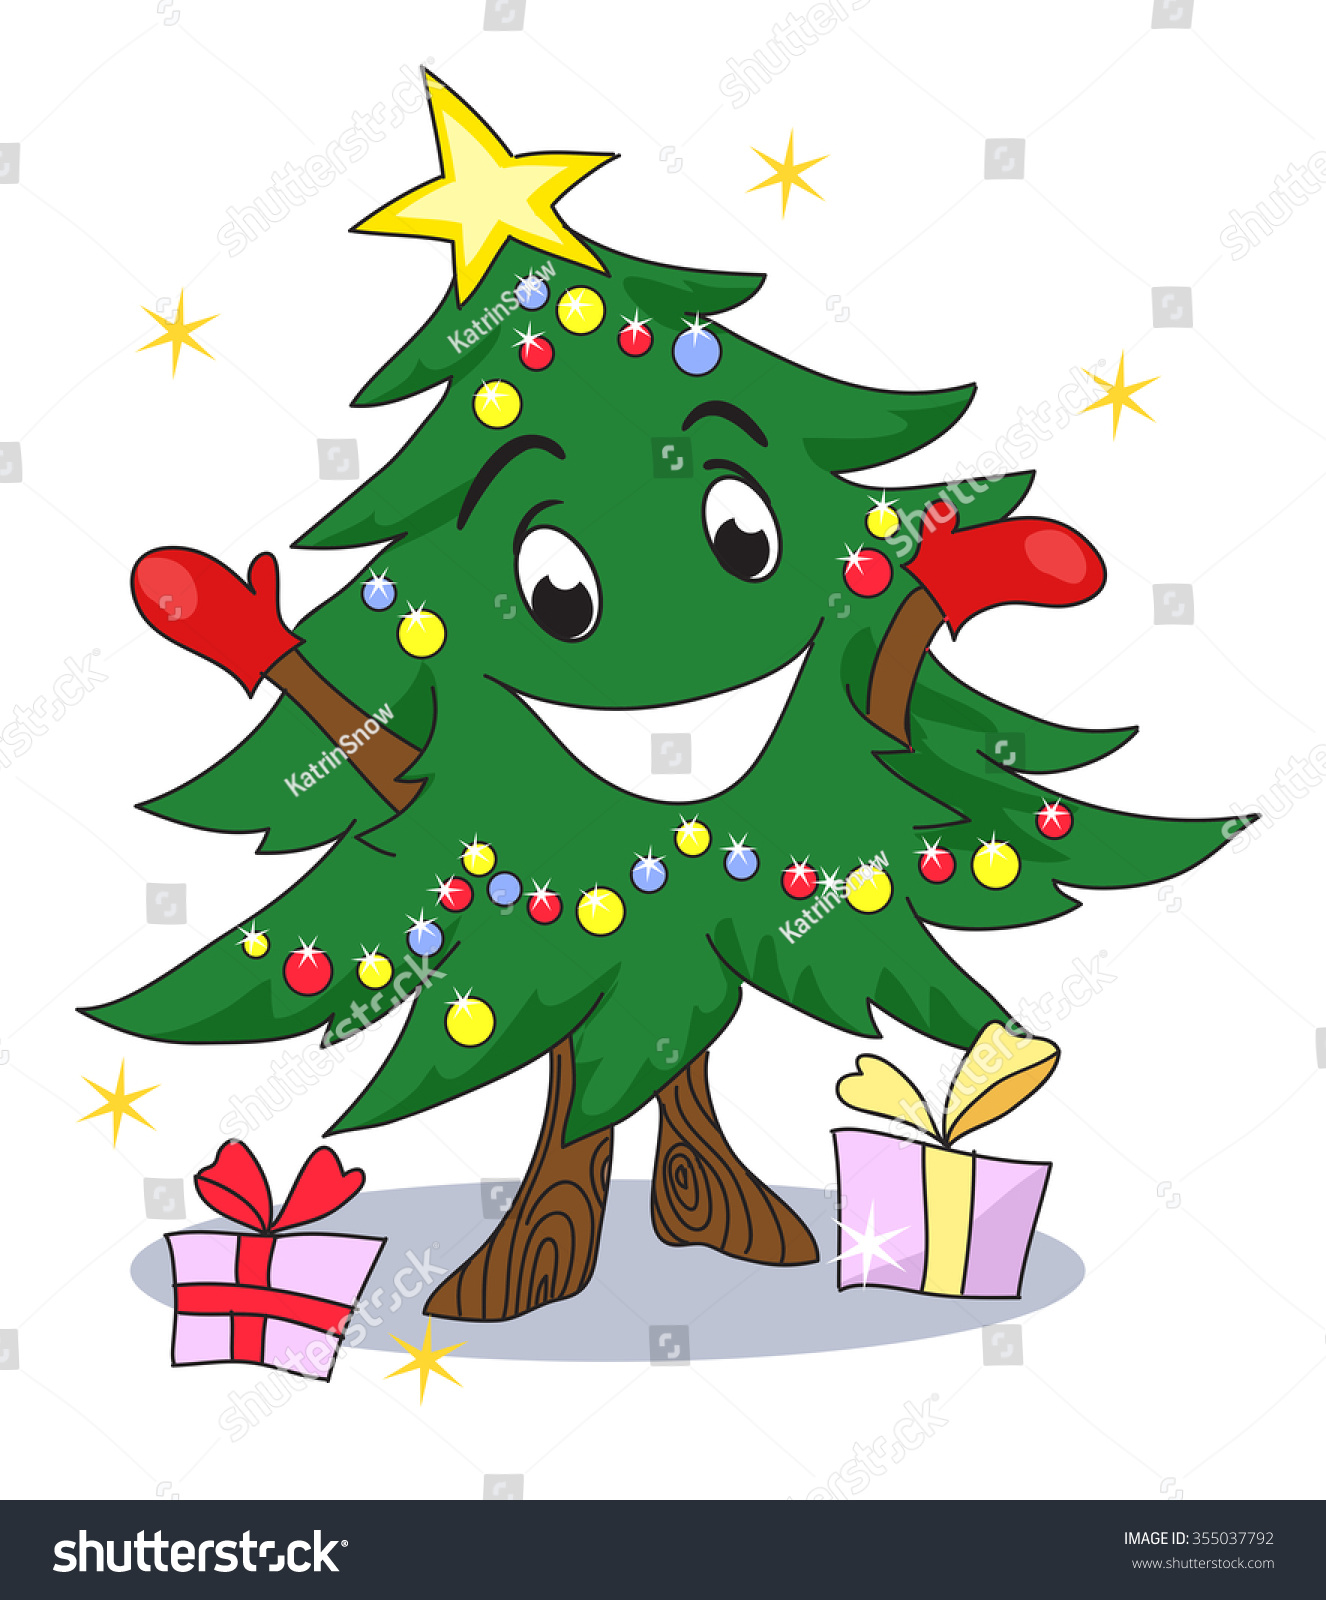 christmas tree character funny animated christmas tree gives you gifts cute christmas character - Animated Christmas Tree